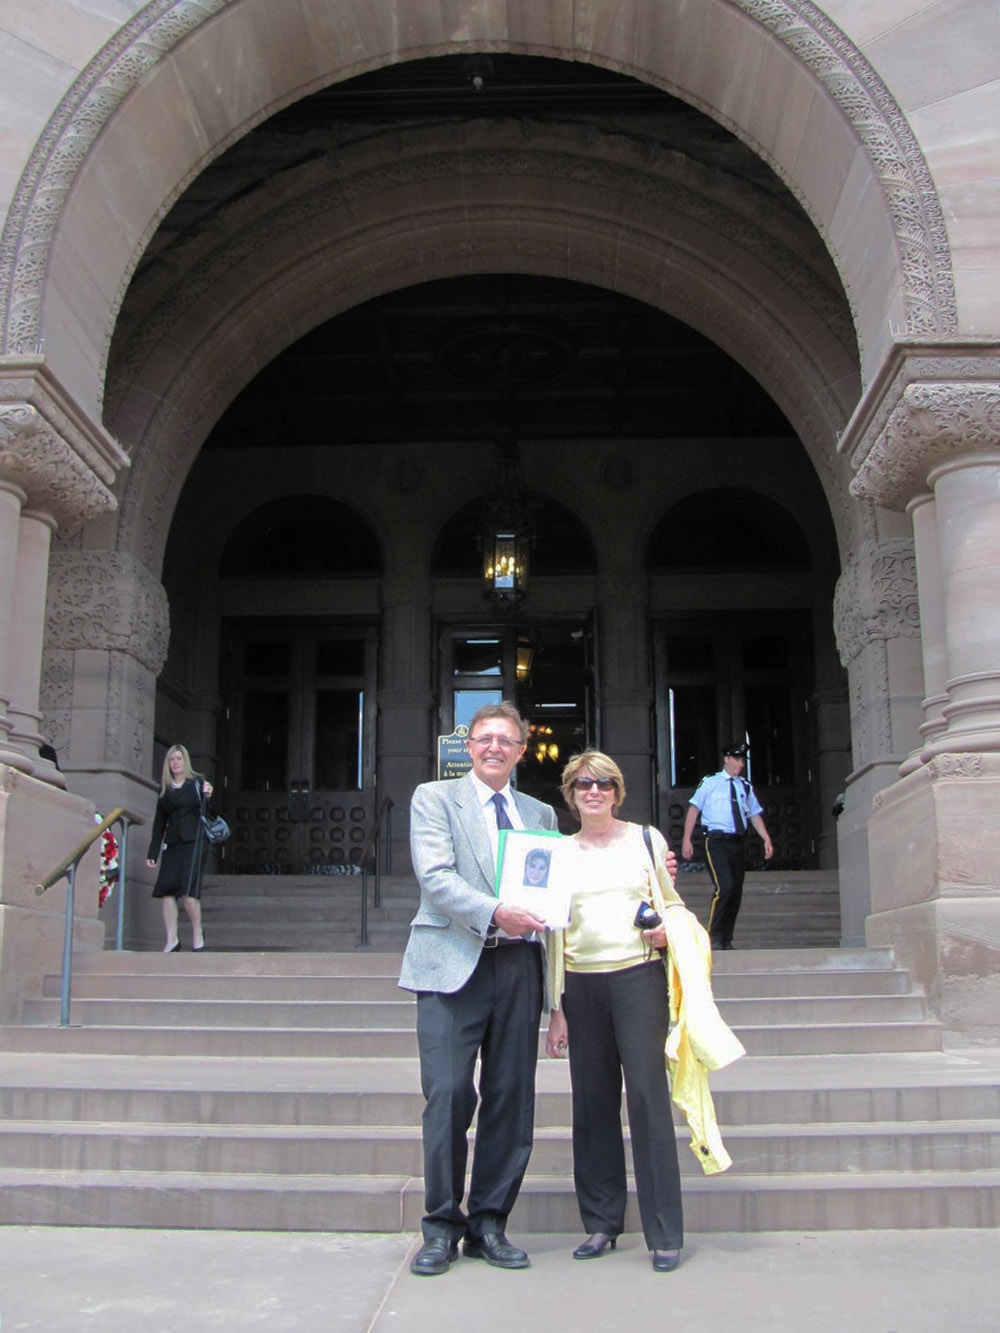 Presenting the document at Queen's Park, 2010